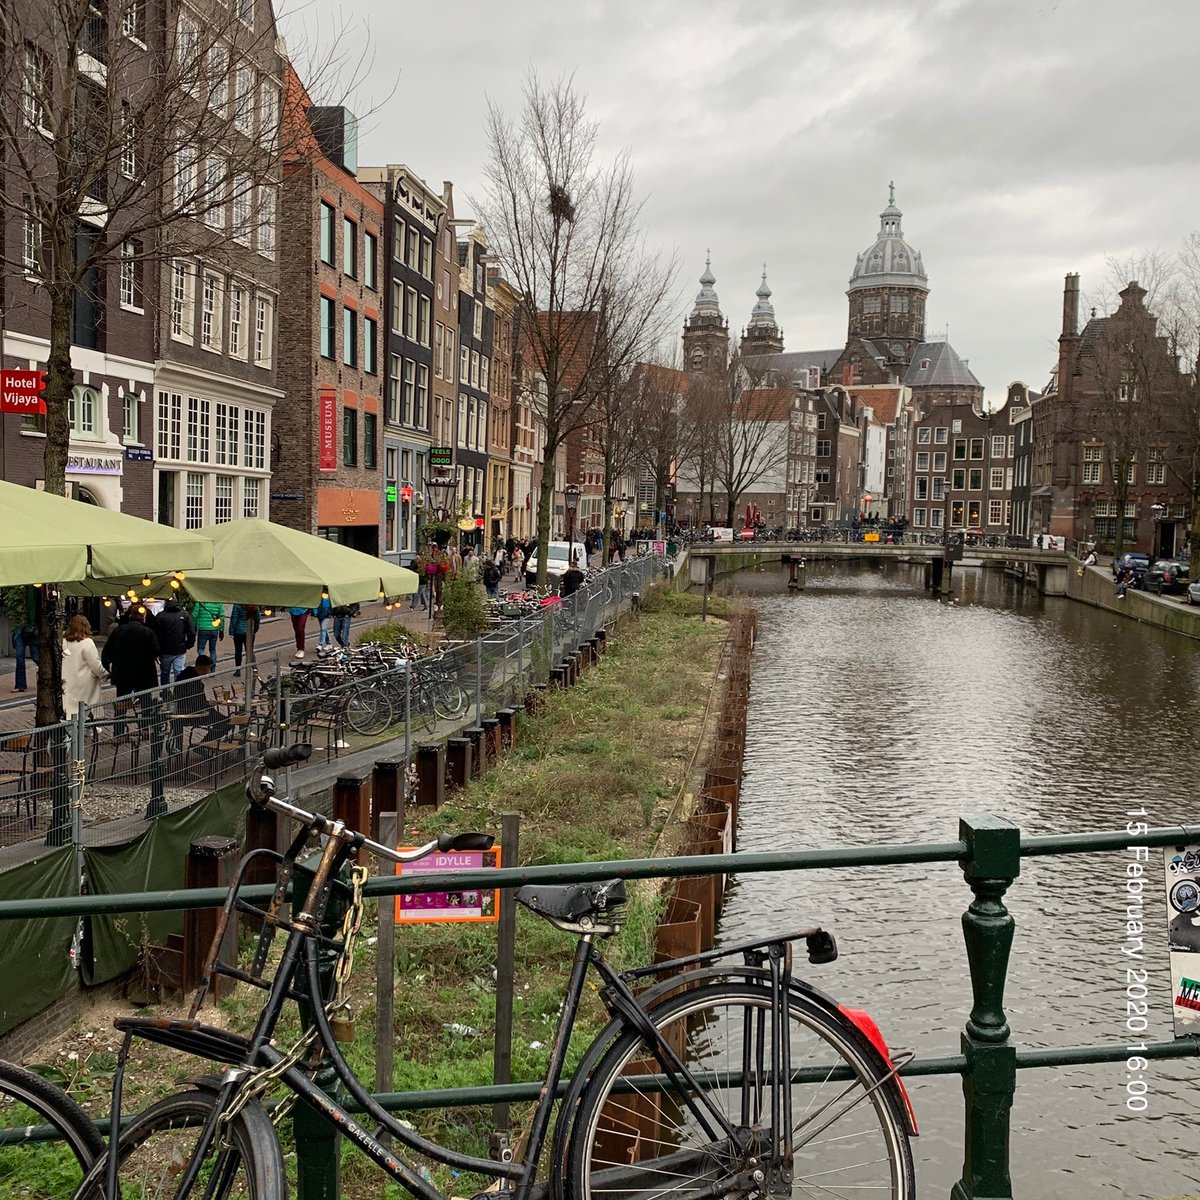 Narrow tilted buildings, canals, & bridges through Amsterdam centrum